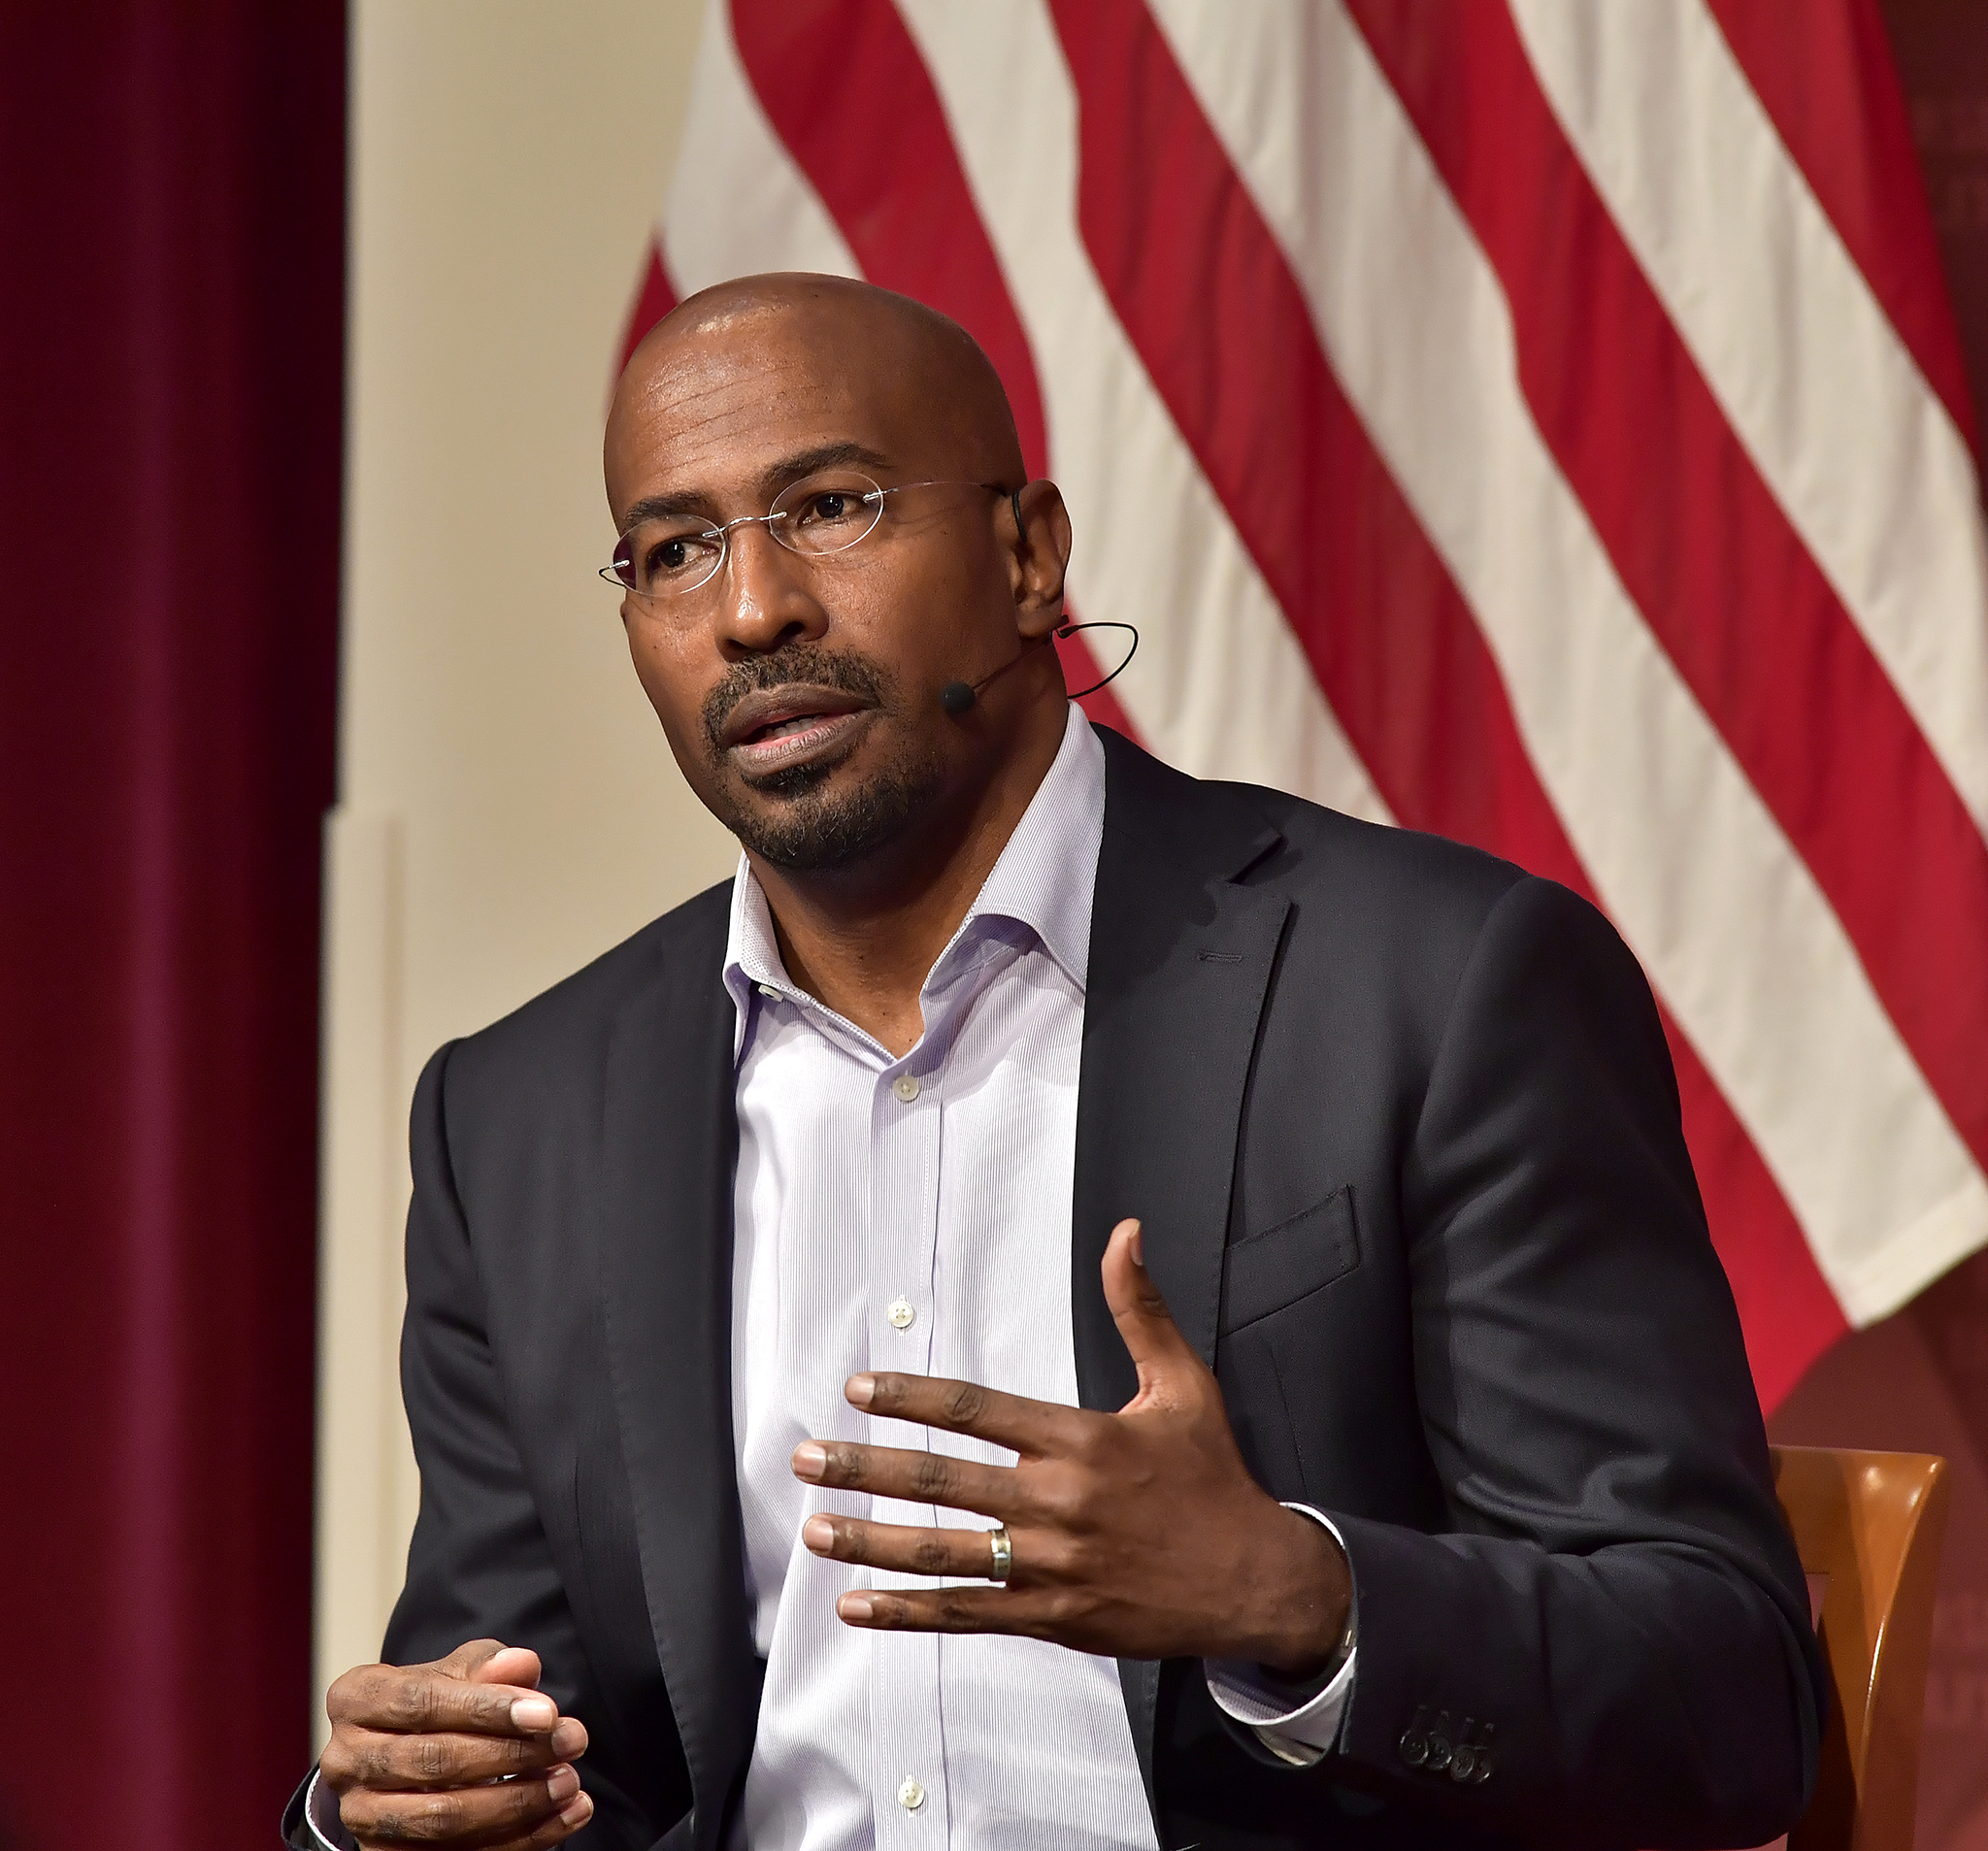 CNN Political Correspondent Van Jones speaks at Harvard University John F. Kennedy Junior Forum, Oct. 13, 2017 in Cambridge, Mass.